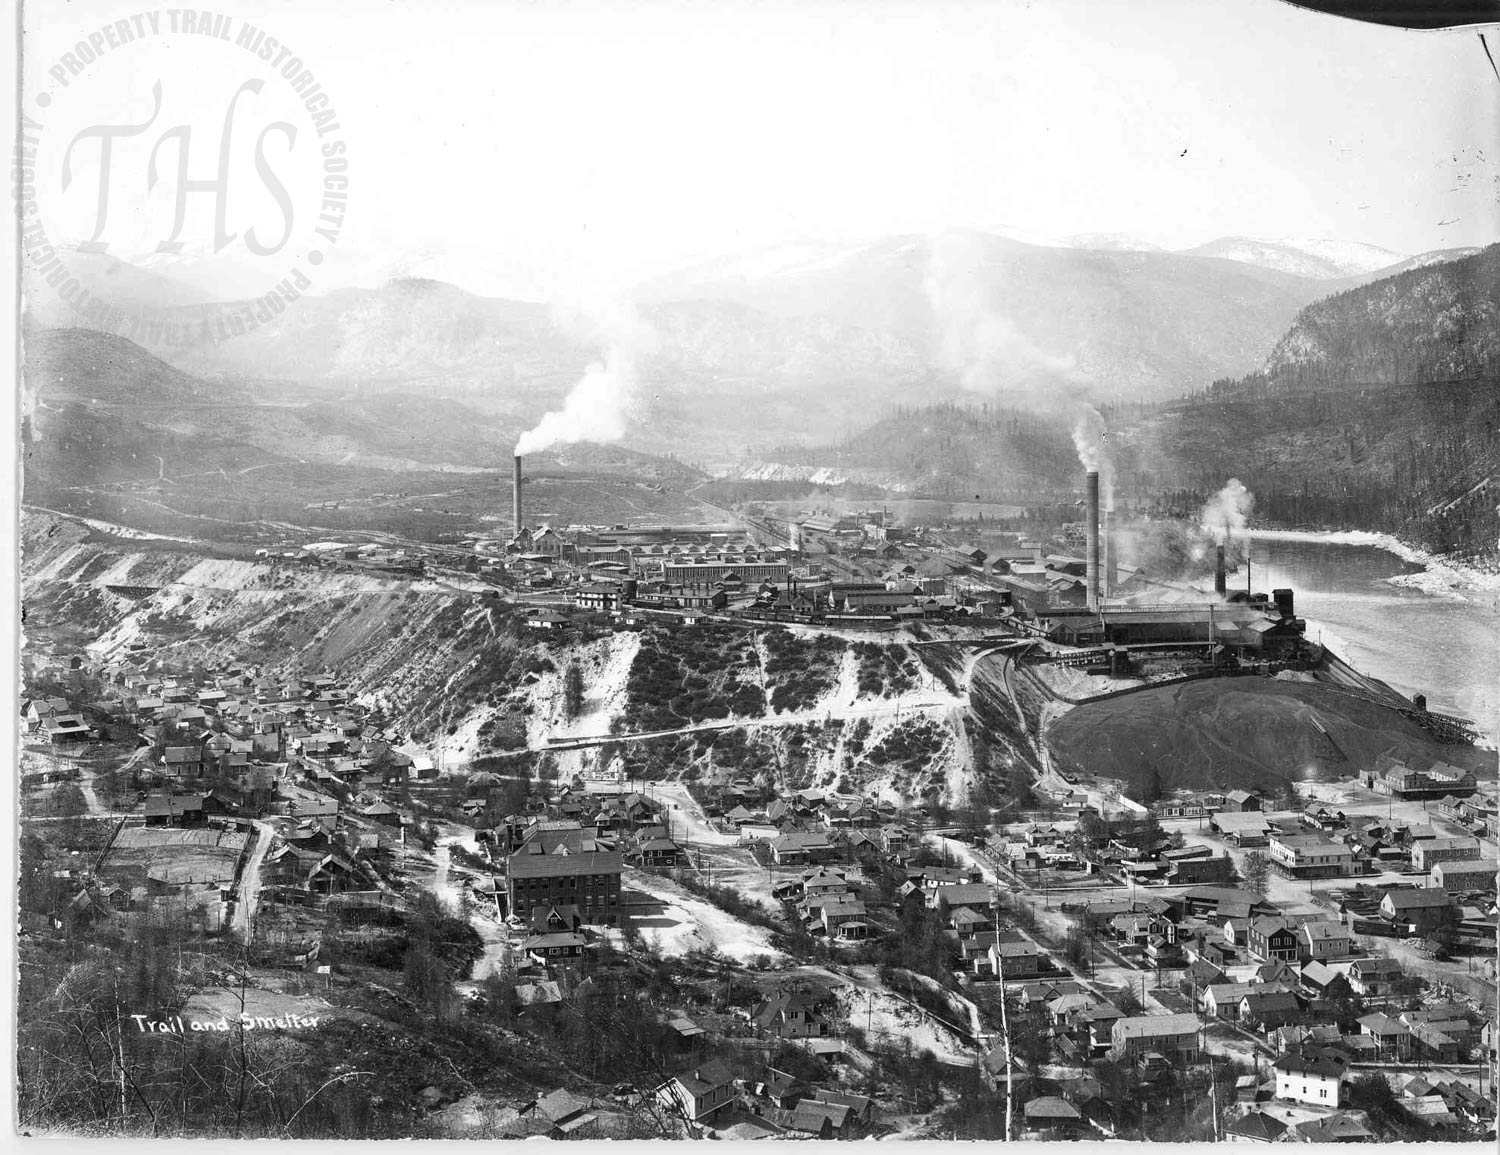 Aerial View of Trail & Smelter (Hughes) - 1920